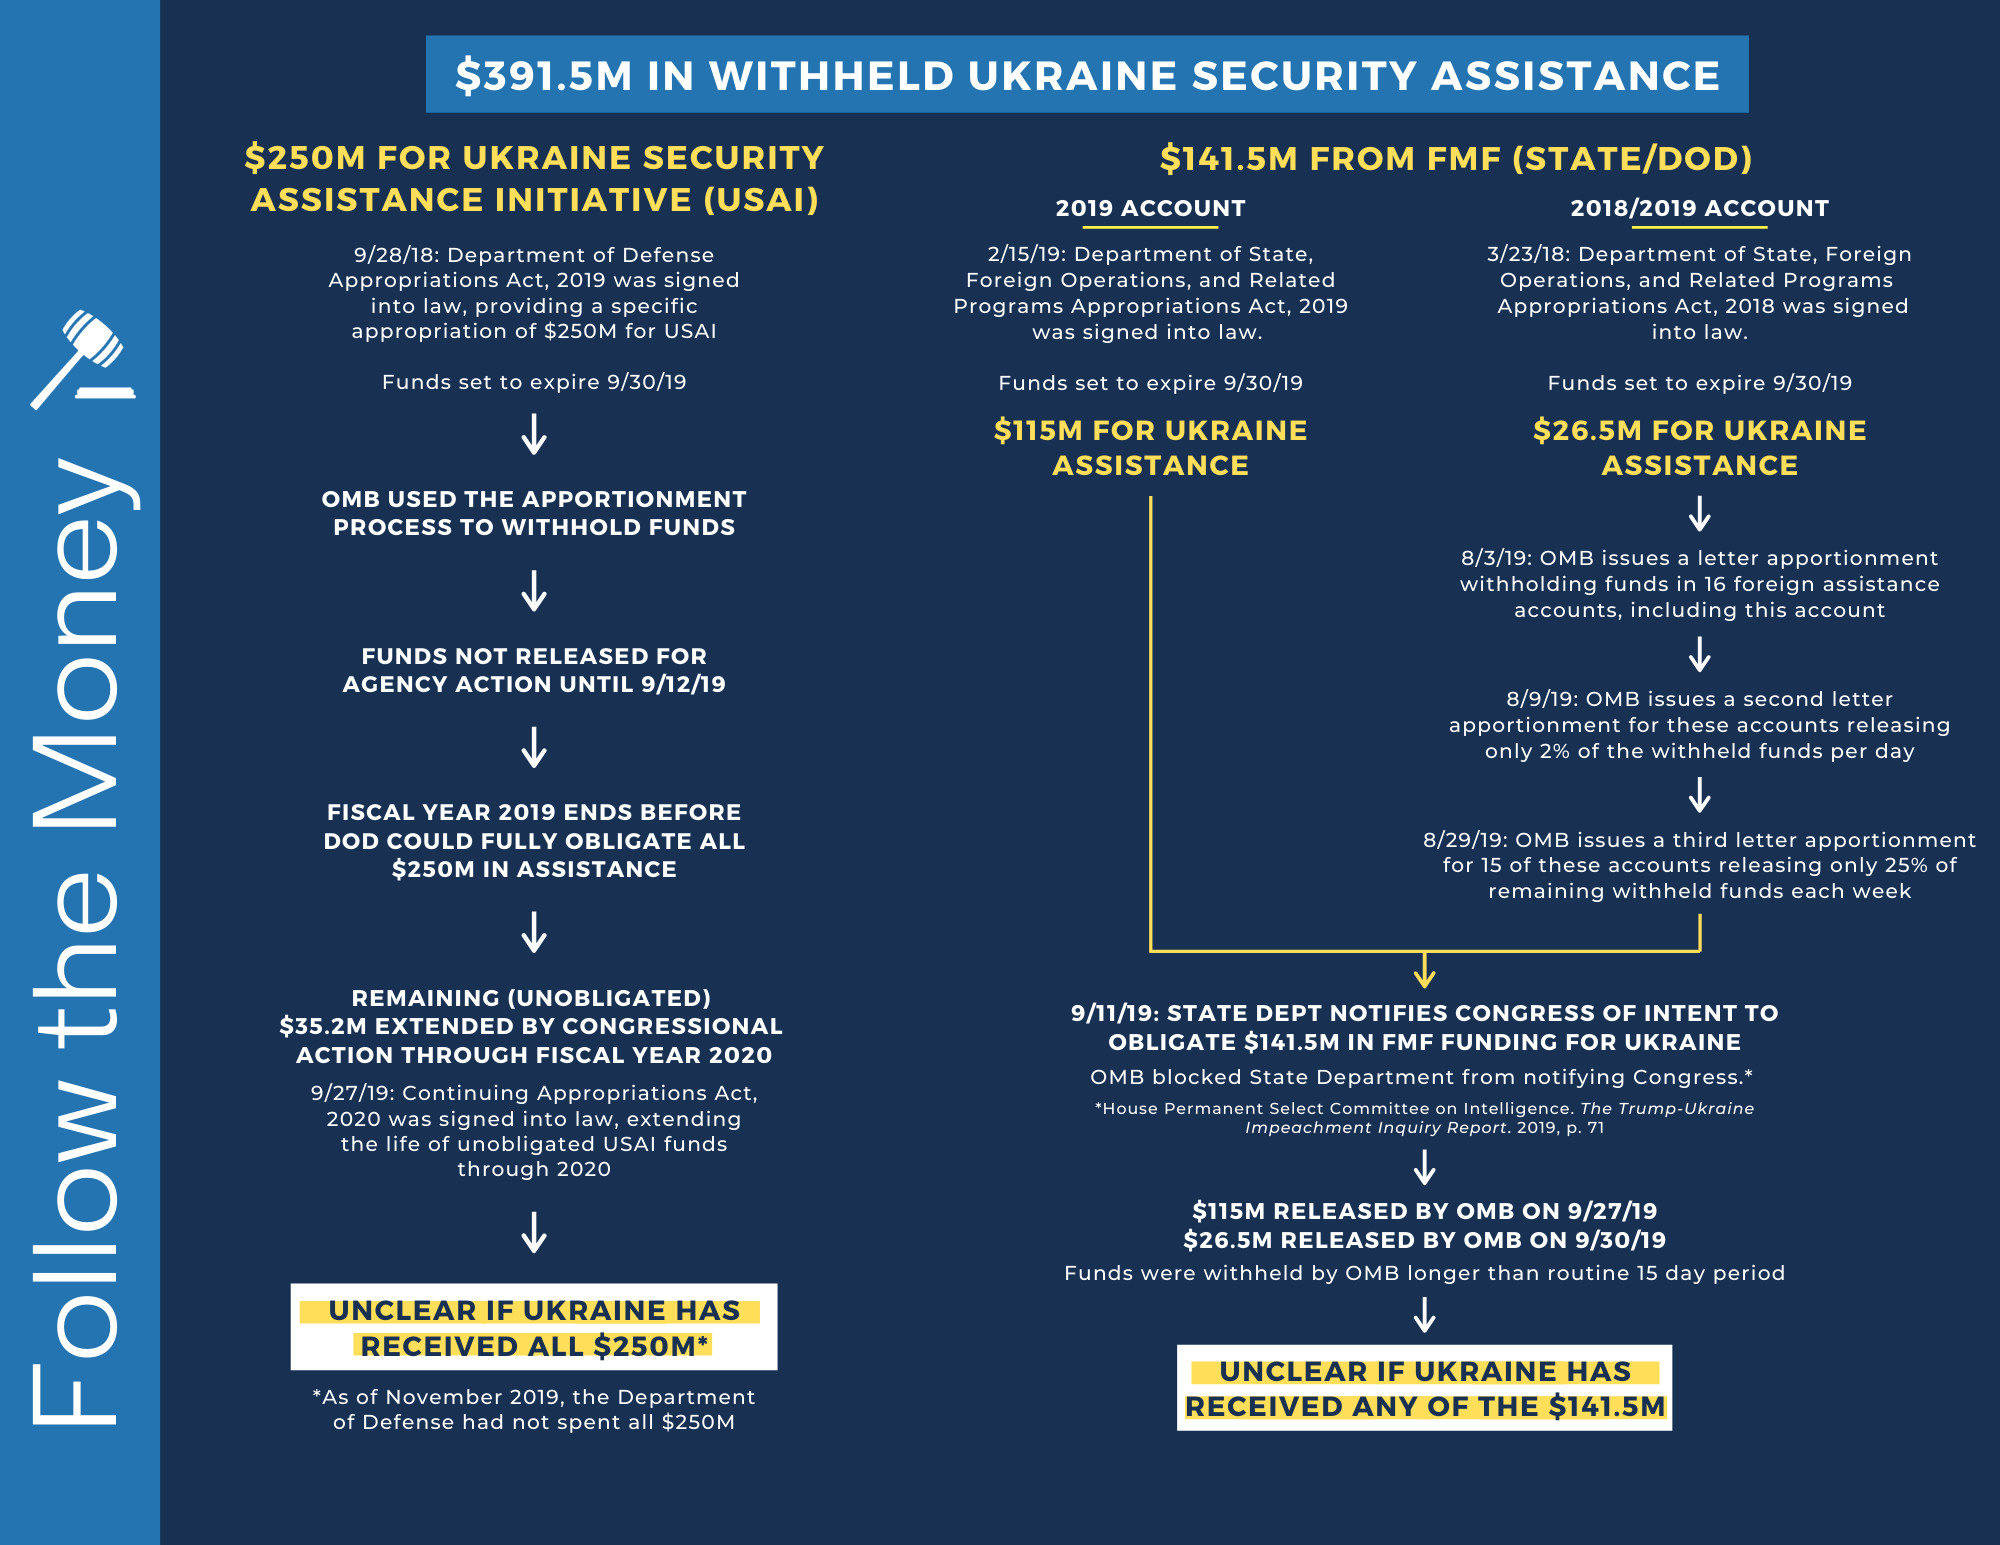 Follow the Money - $391.5M in Withheld Ukraine Security Assistance_CHART